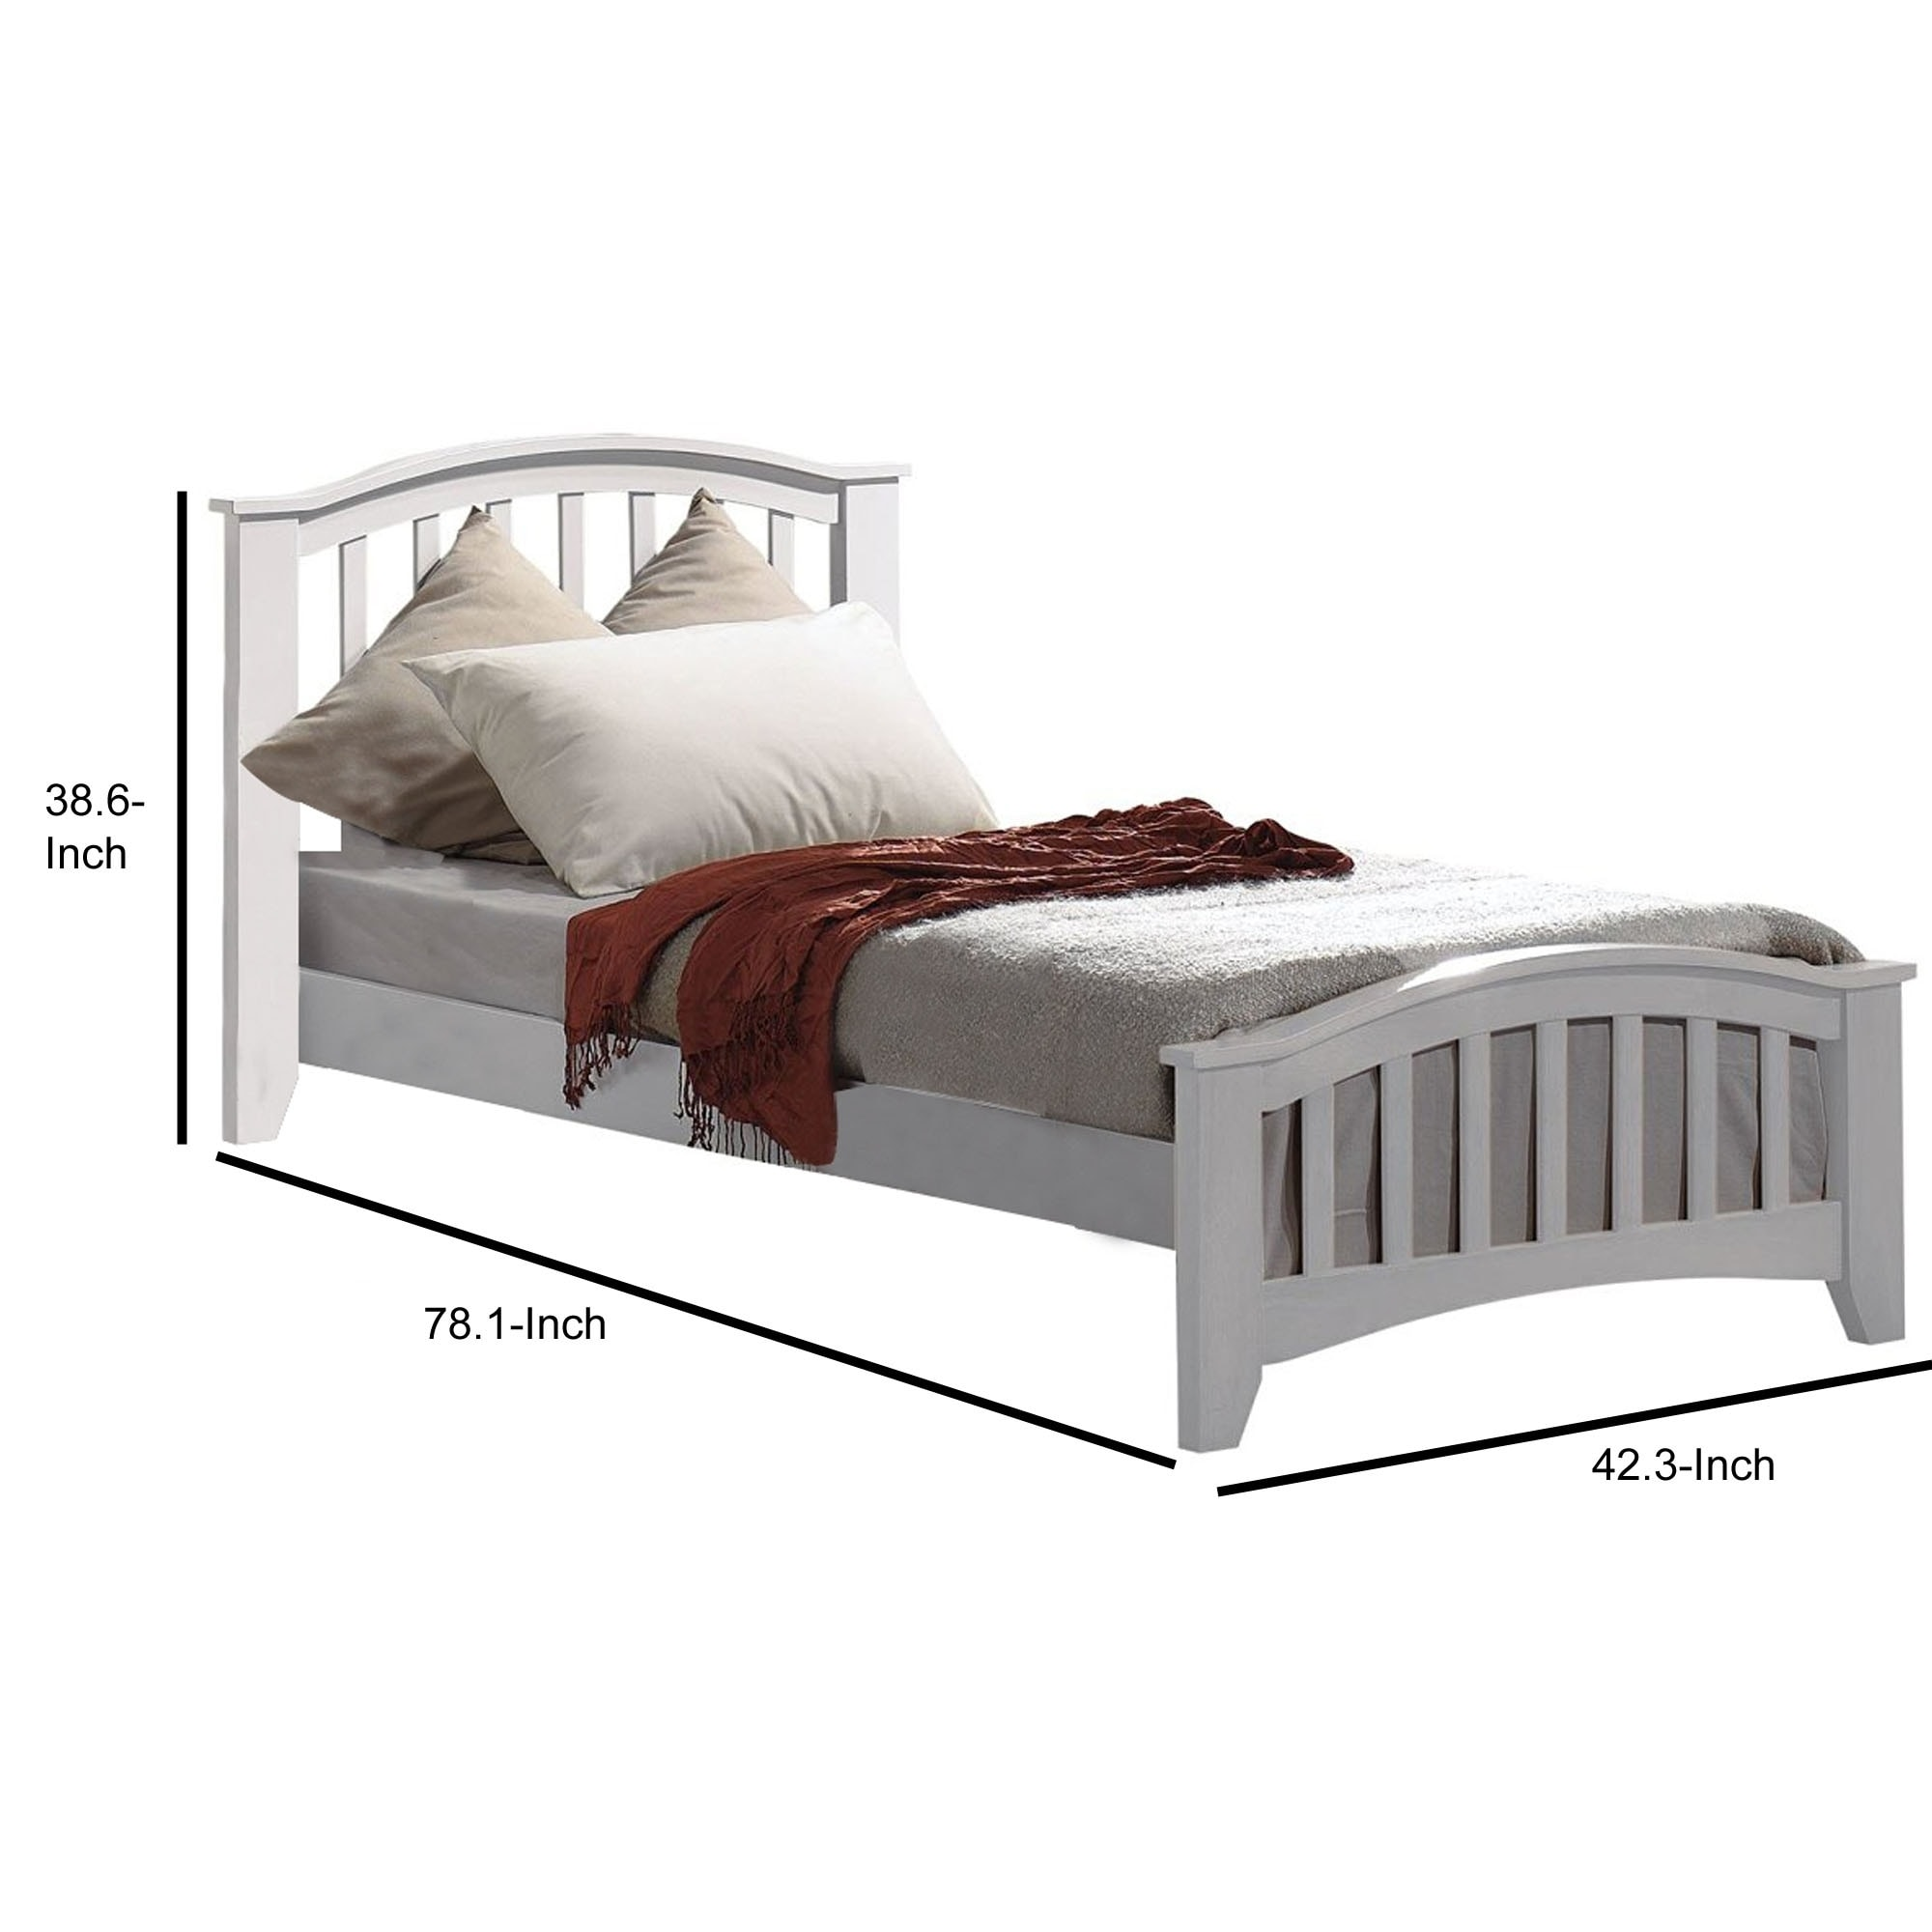 Shop Mission Style Wooden Twin Bed With Arched Slatted Headboard And Footboard White On Sale Overstock 29714110